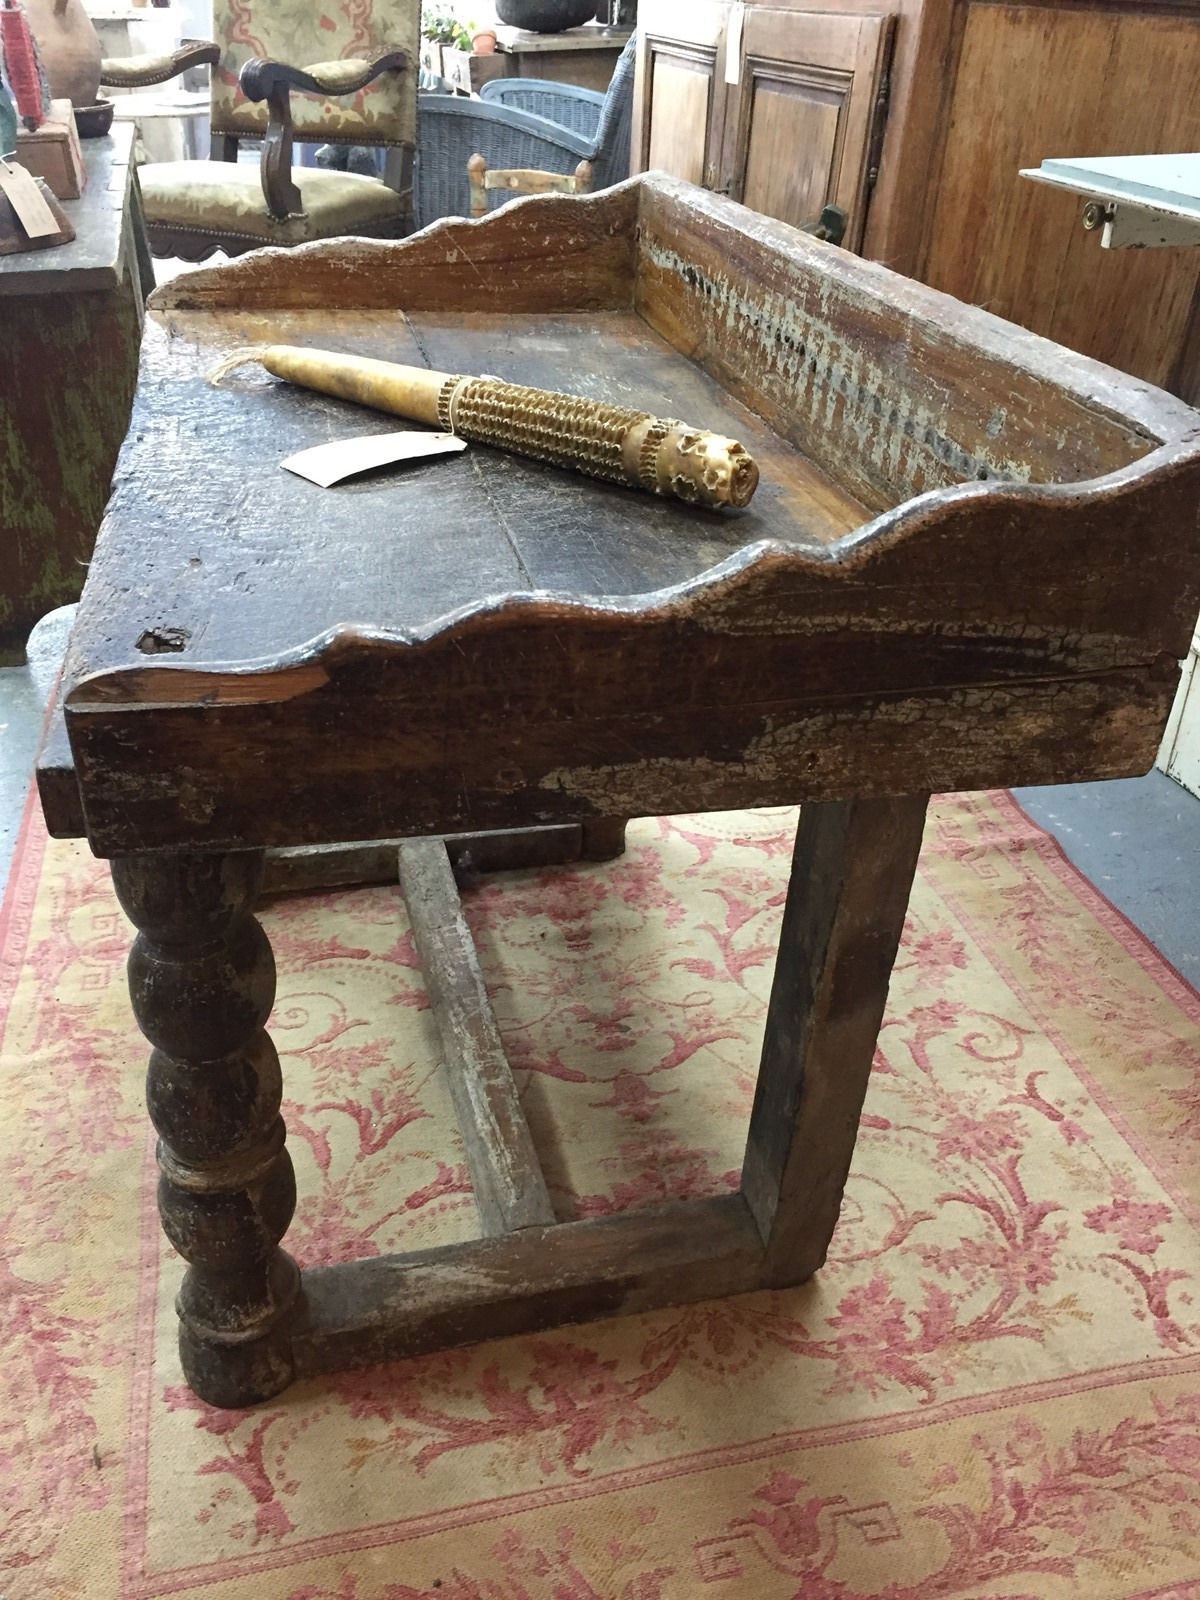 b and r antiques img 2706 main large JPG